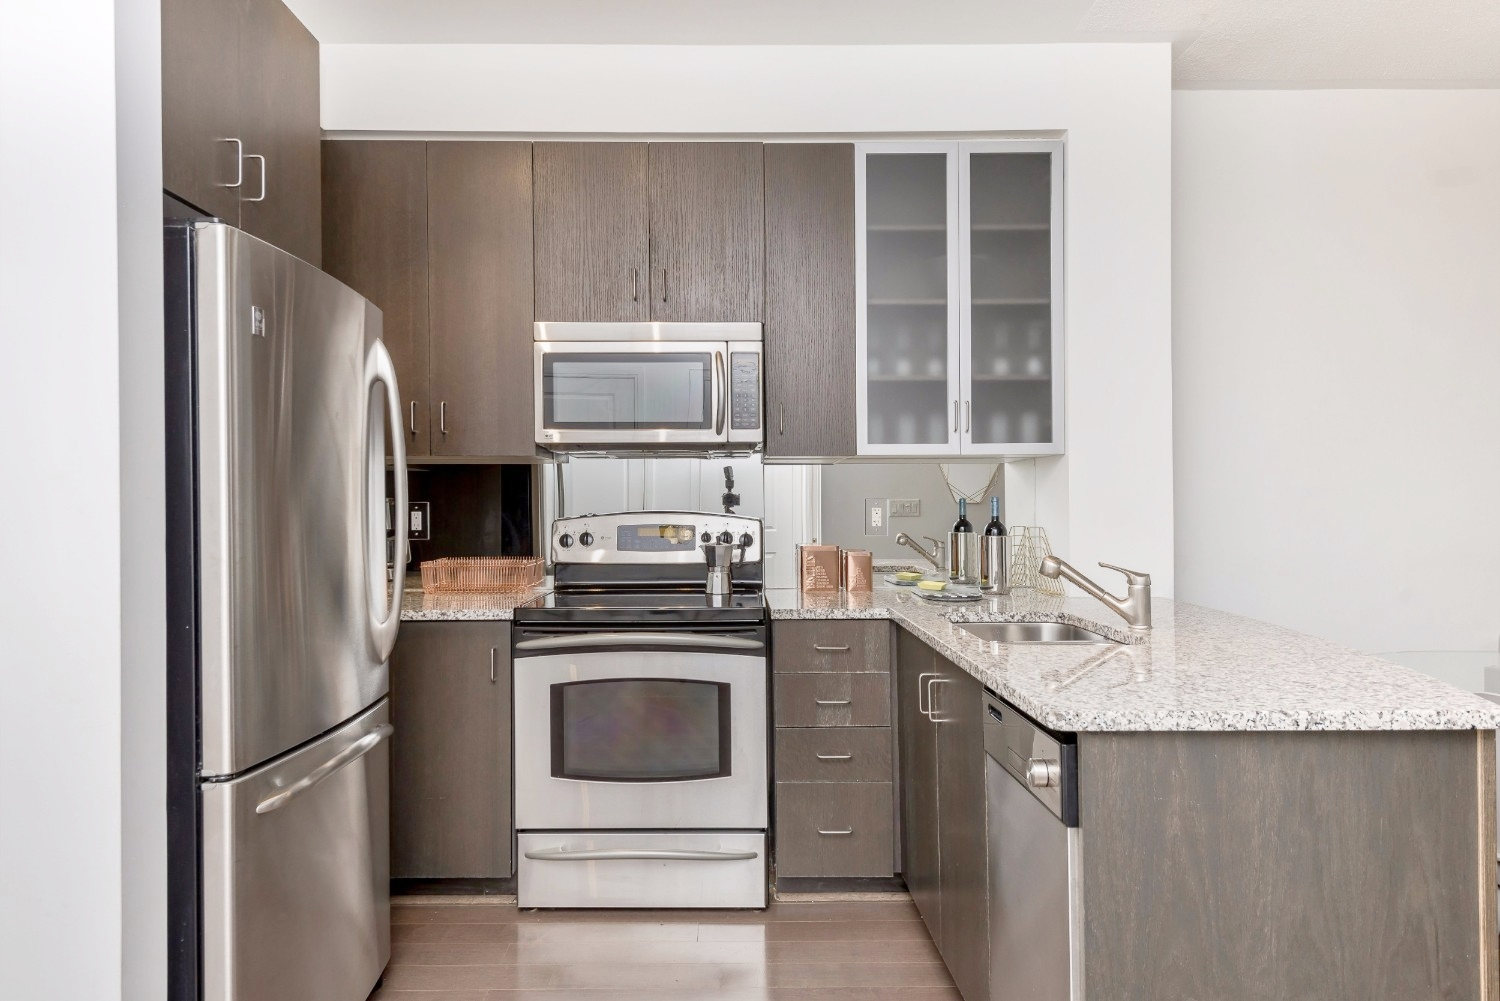 Copy of Yorkville Grand Condo - Kitchen, Modern Appliances